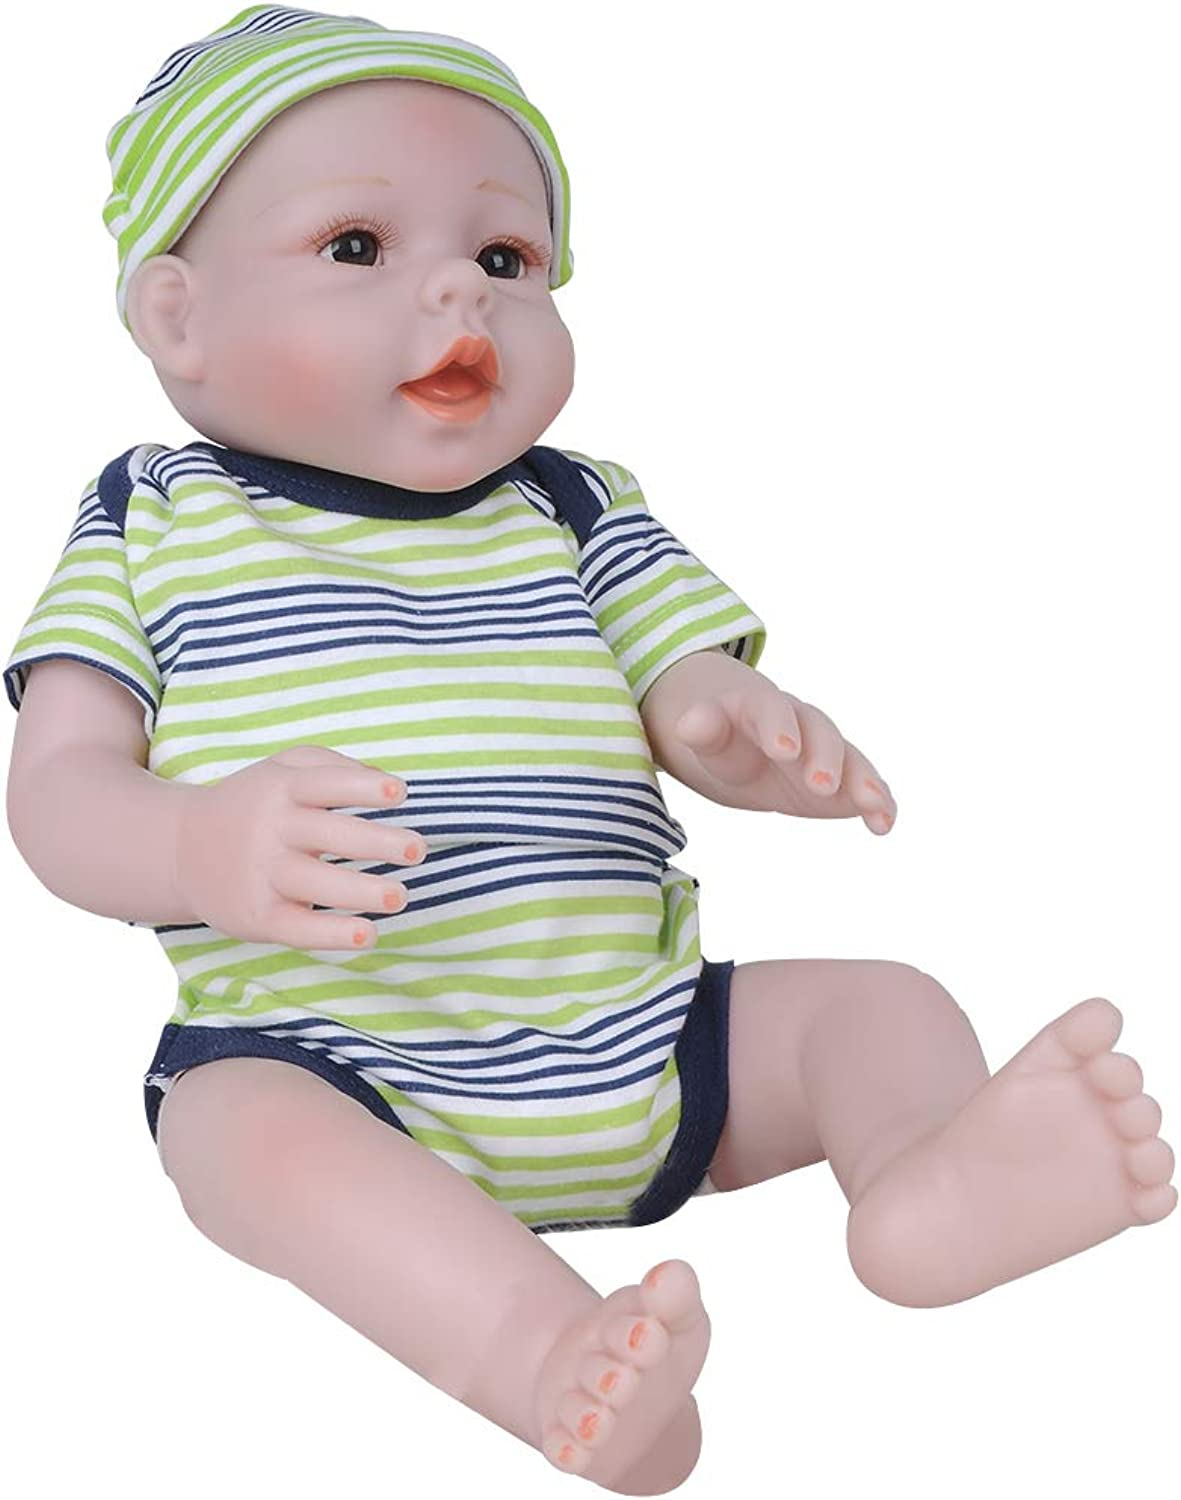 Flameer Real Life 20inch Reborn Baby Toddler Doll Newborn Size Fake Toddler Doll  Reborn Toddler Dolls That Look Real  Appease Toys